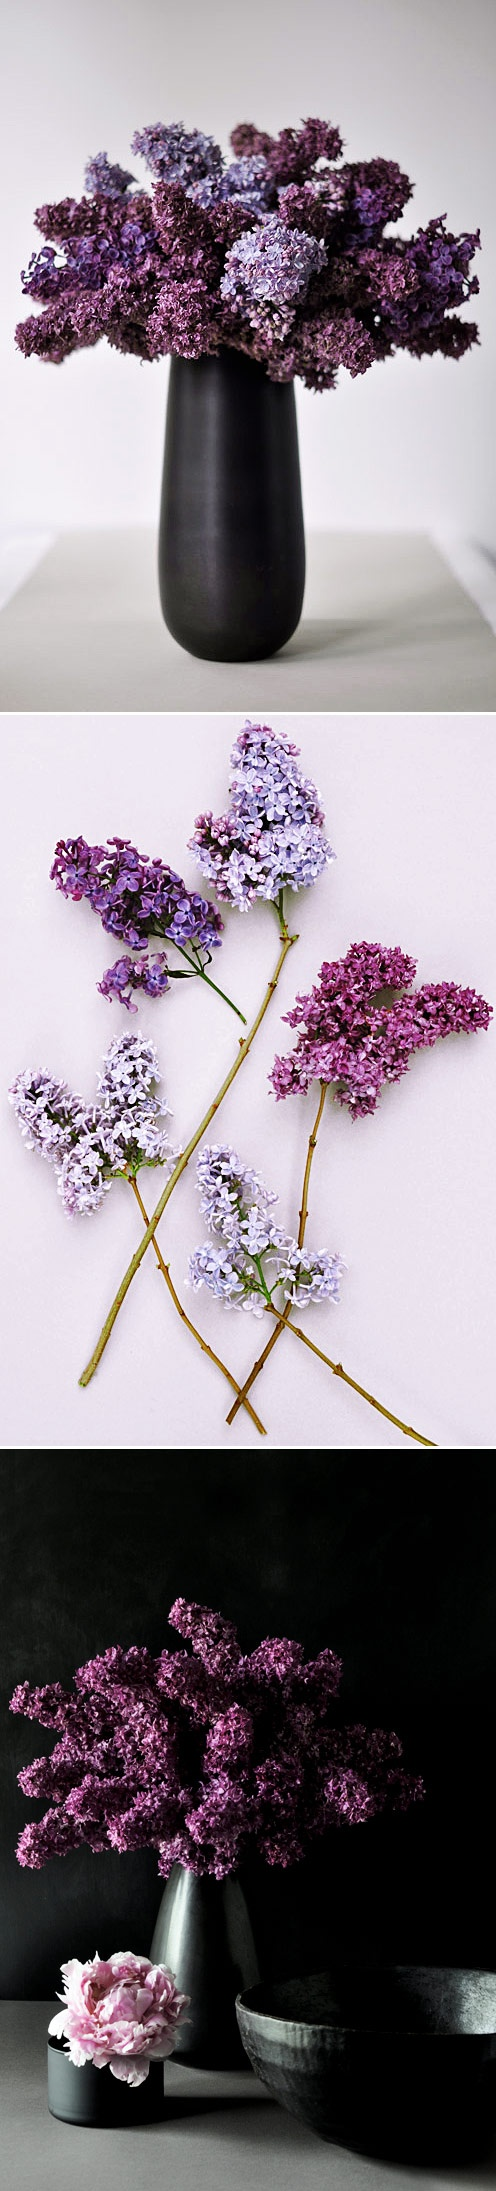 One of my favorite flowers.  Lilacs.  Spring---the fresh scent in a spring-cleaned home...reminds me of Snohomish....